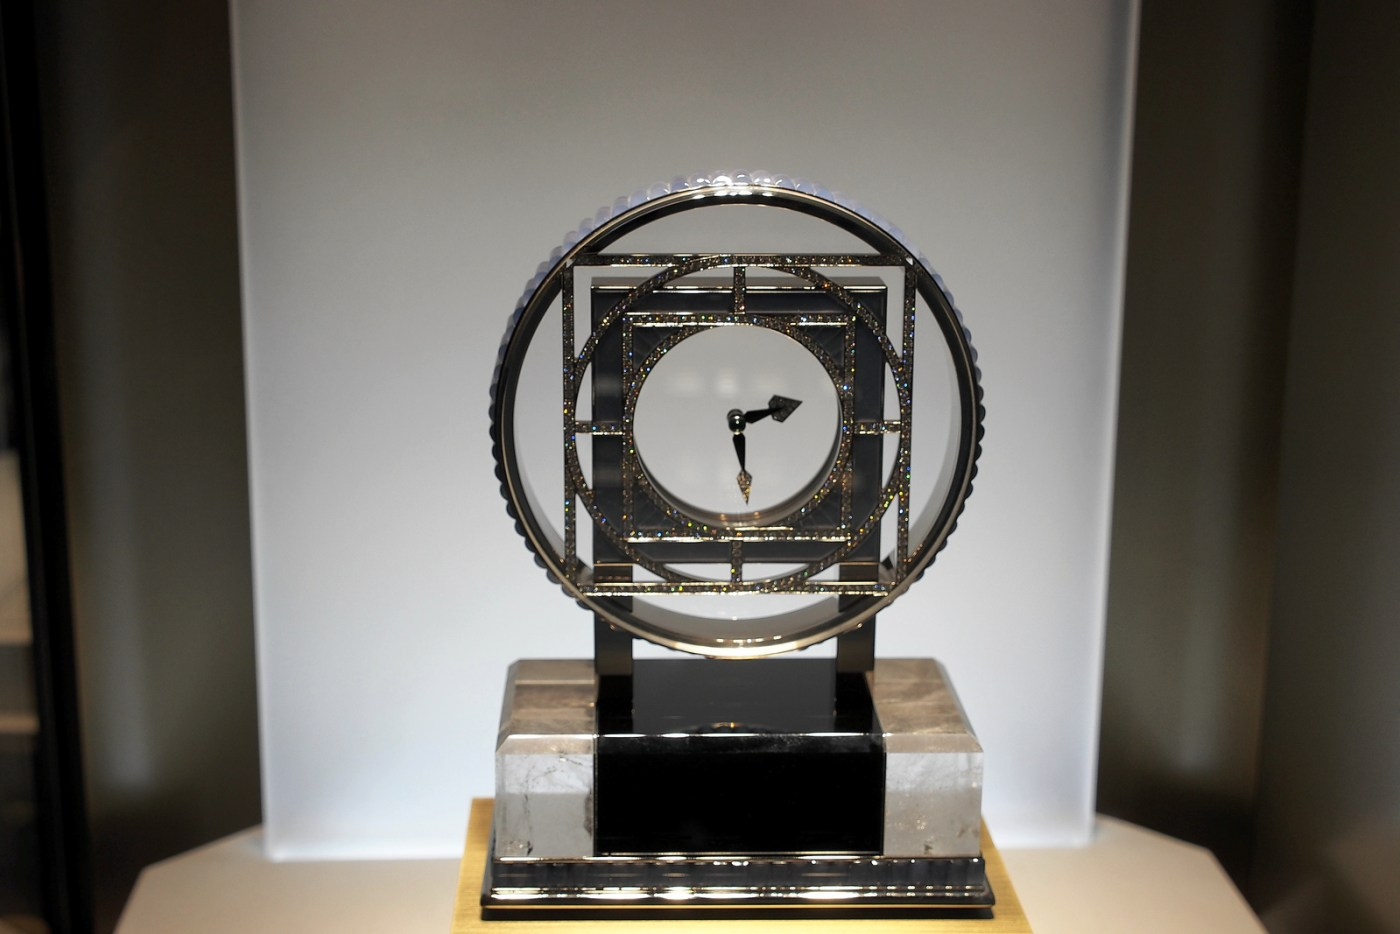 Cartier Mysterious clock on display at SIHH 2013